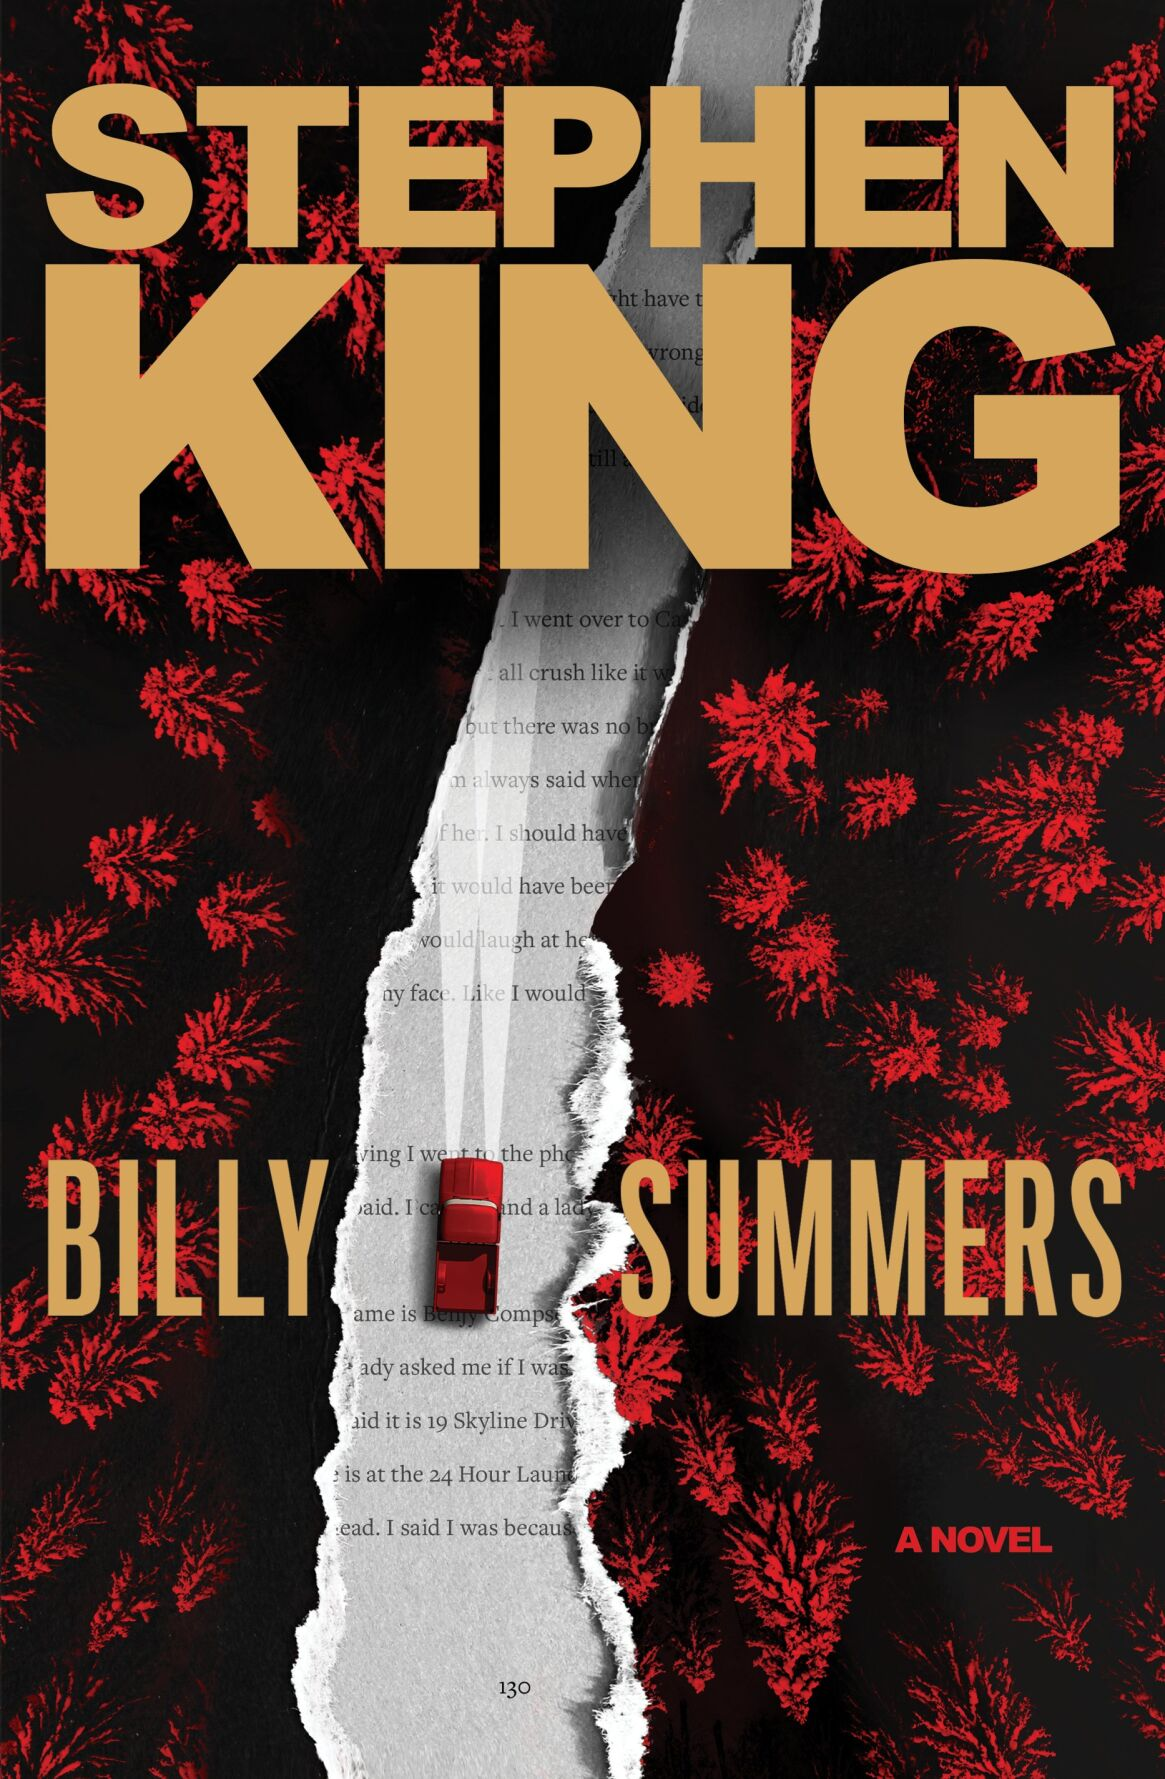 King's 'Billy Summers' delivers on big payday